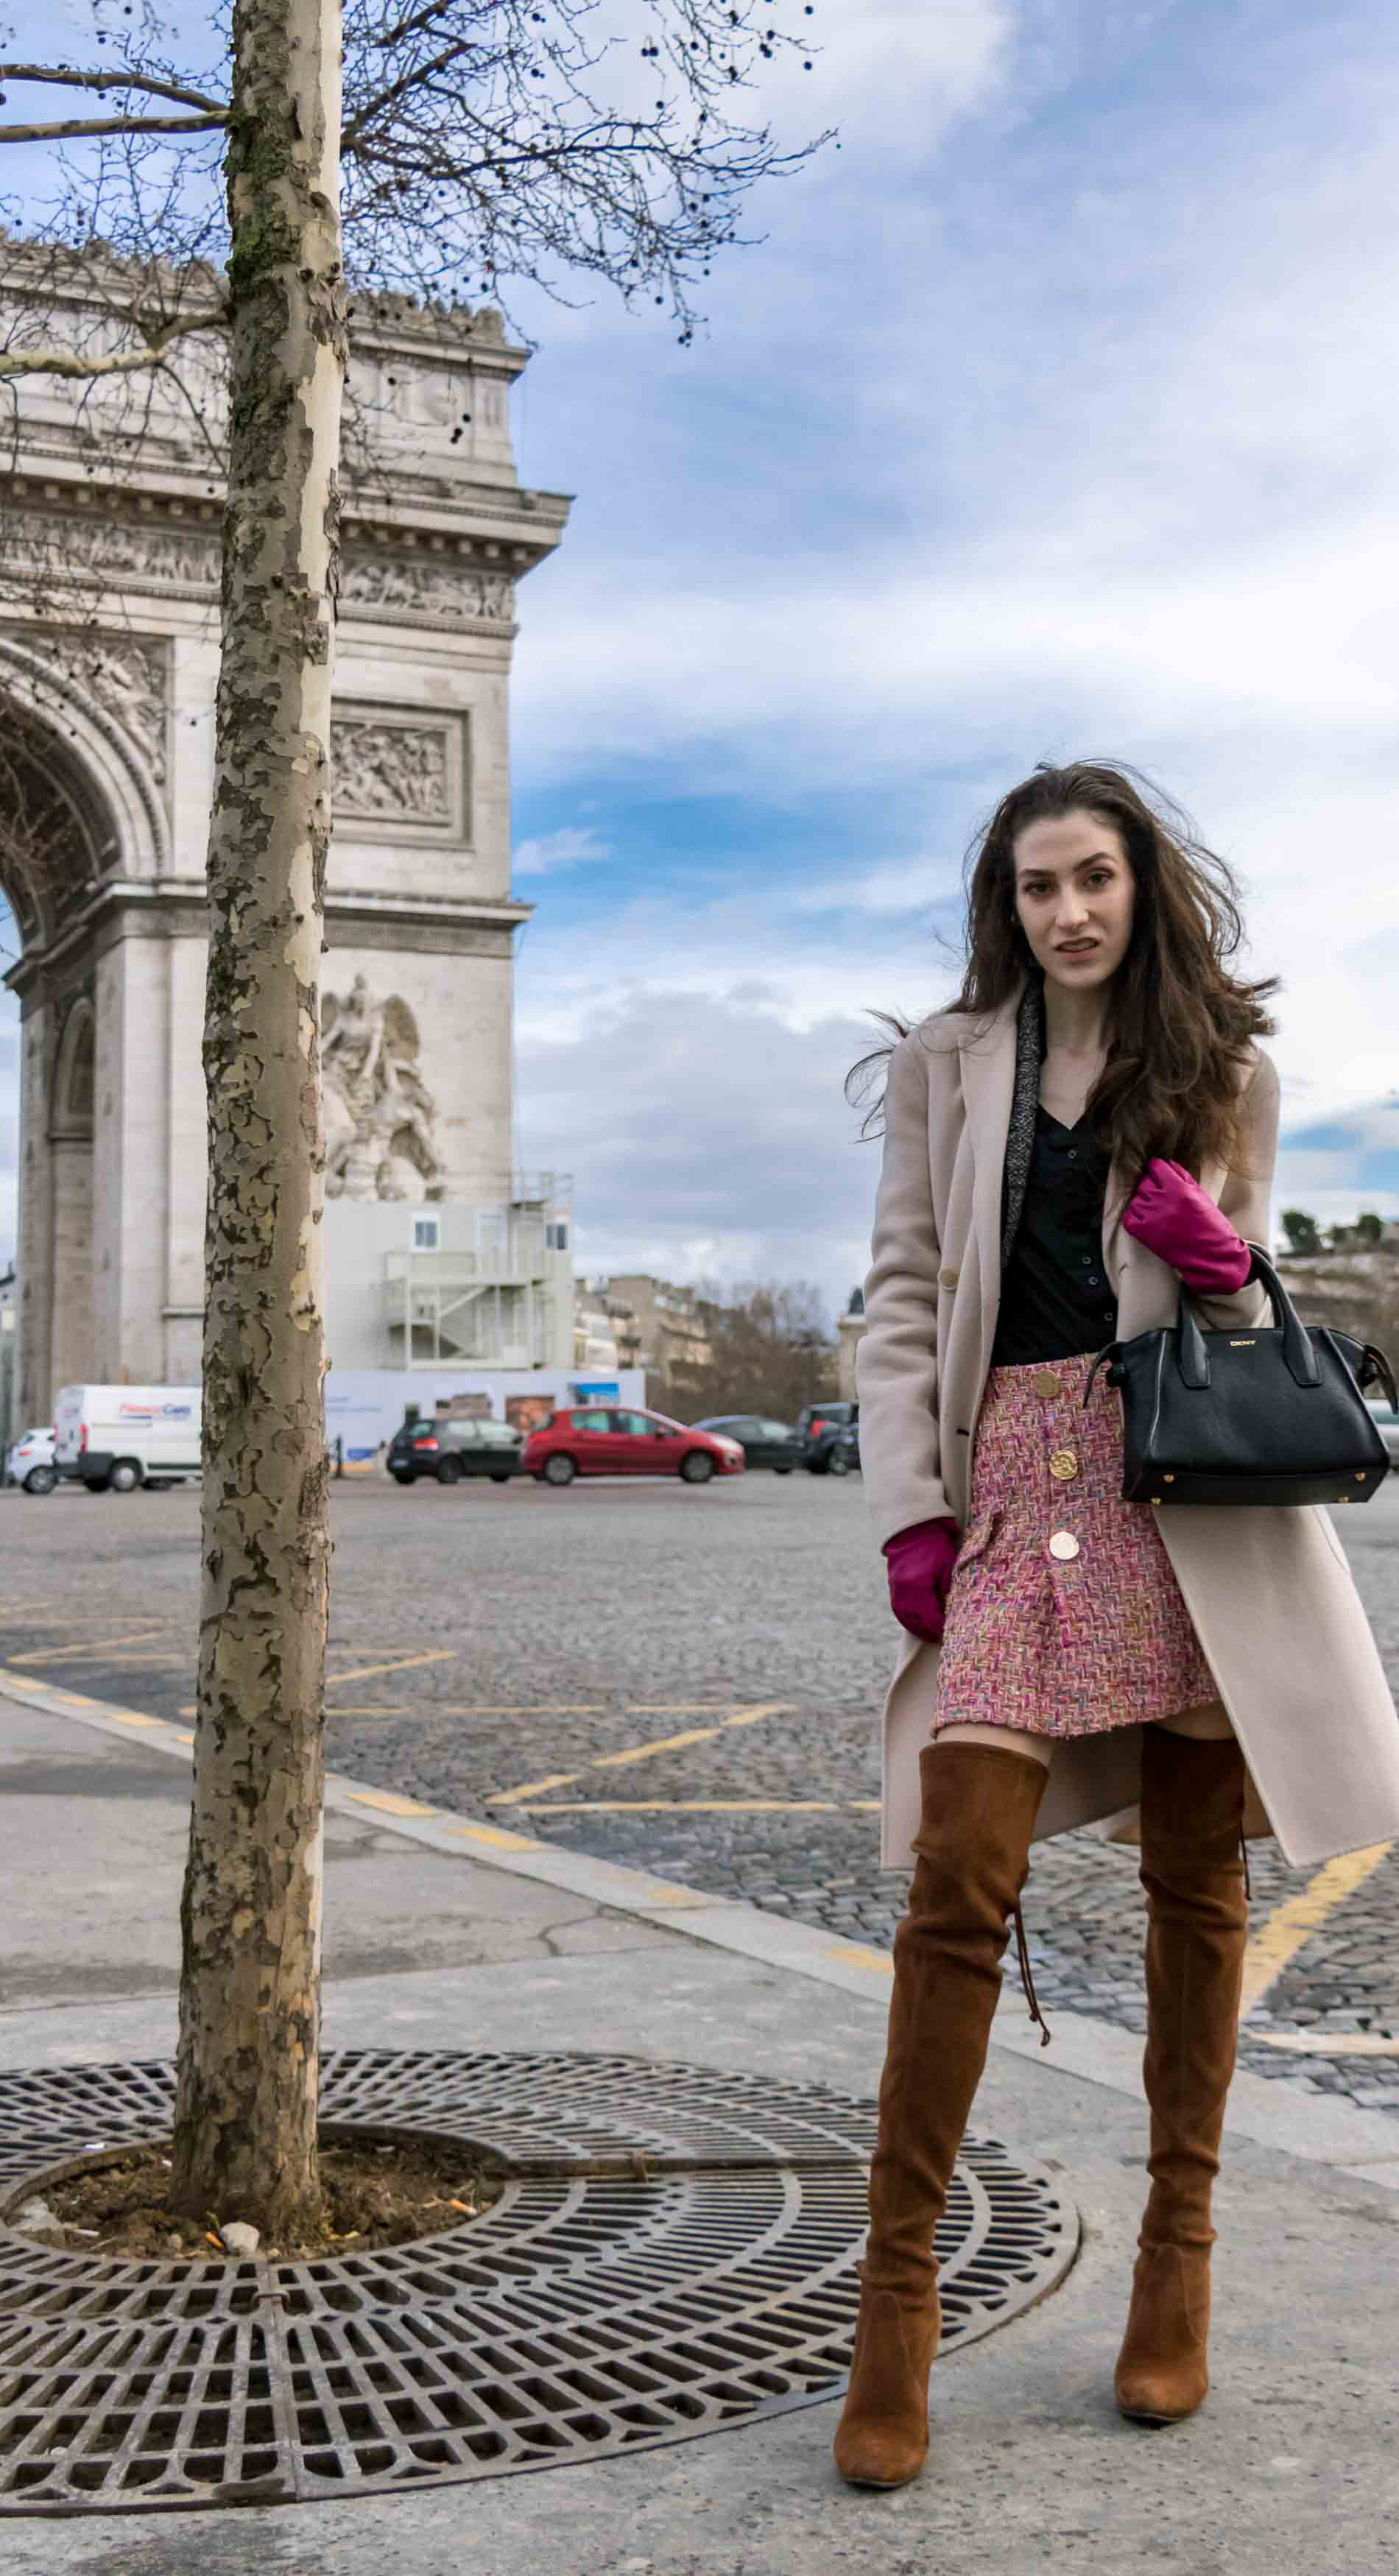 Fashion Blogger Veronika Lipar of Brunette from Wall Street dressed in Stuart Weitzman over the knee boots, Weekend Maxmara coat, Storets pink tweed shorts, black shirt, pink leather gloves and black small bag during Paris fashion week autumn winter 2018/19 standing infant of the Arc du Triomphe